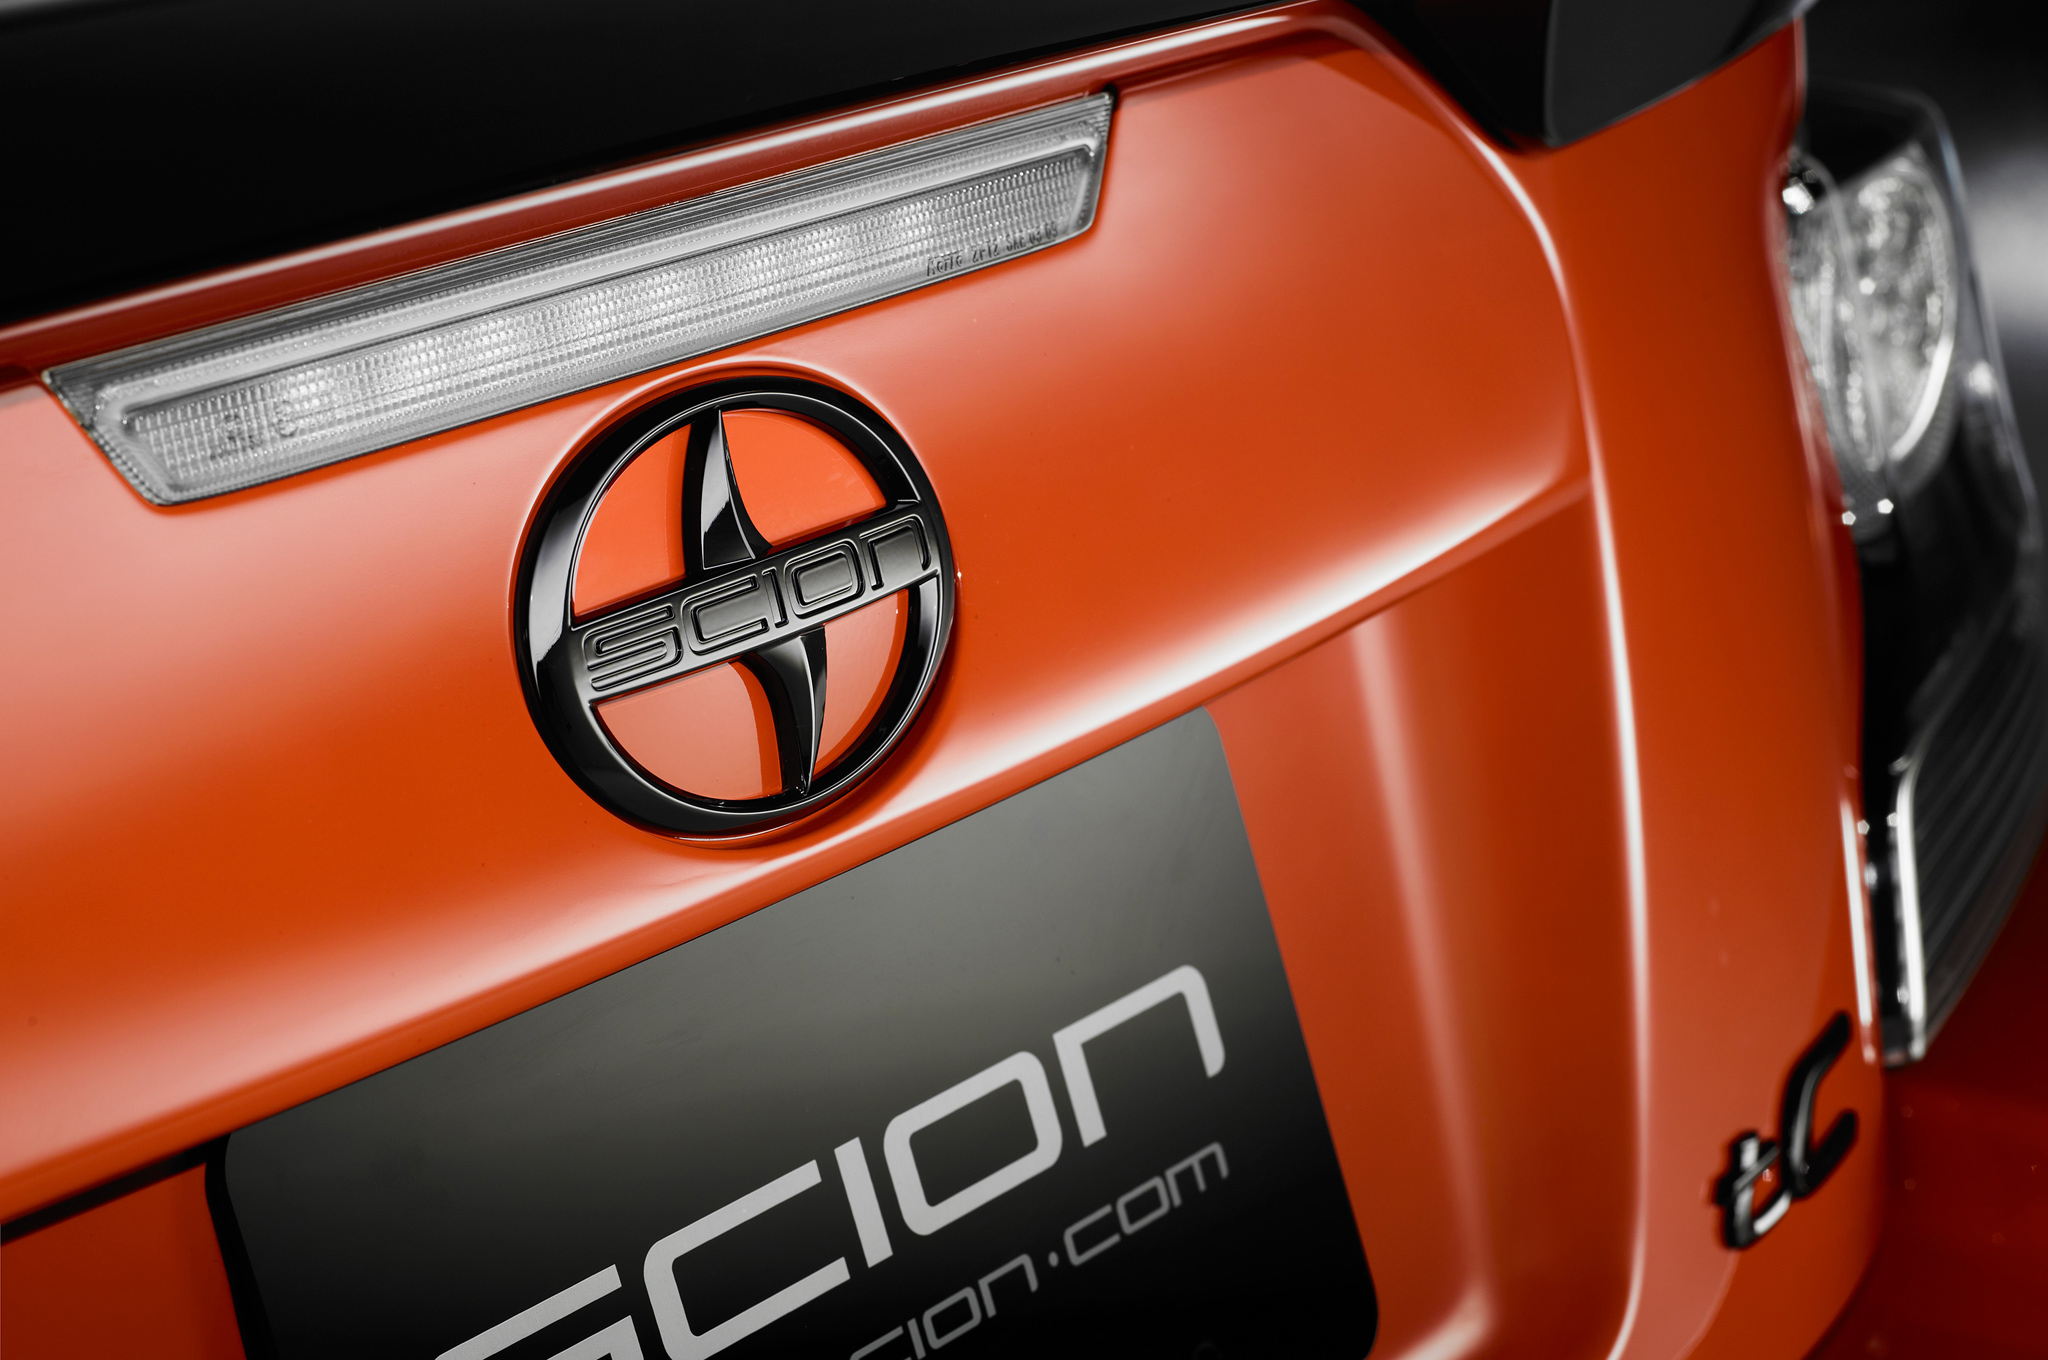 2017 Scion Tc Release Series 9 Rear Badge Closeup